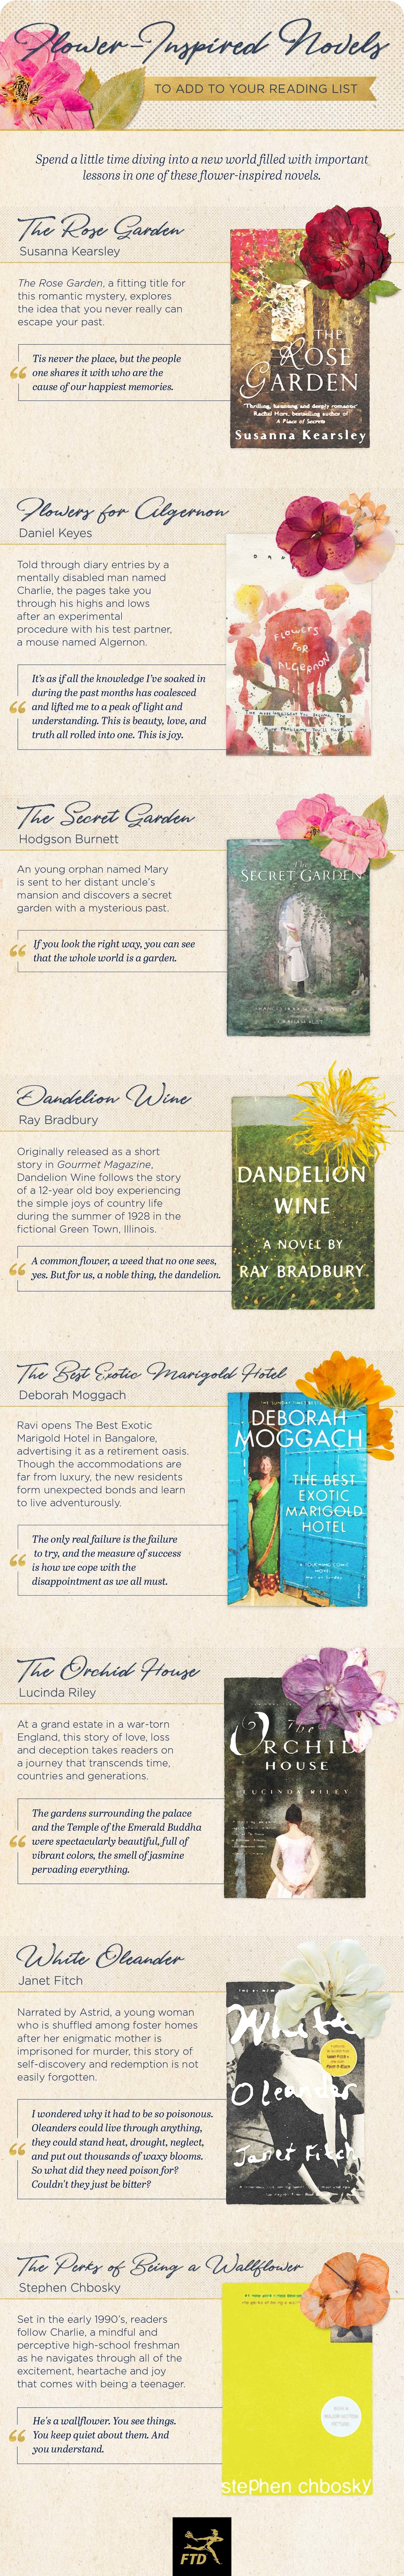 [image description: an infographic showing 10 flower-inspired novels. The list names each book and has a photo of the book cover, along with a picture of the flower associated with the book. The list is as follows: The Secret Garden by Hodgson Burnett, Dandelion Wine by Ray Bradbury, Flowers for Algernon by Daniel Keyes, The Sunflower Forest by Torey Hayden, Desert Flower by Waris Dirie and Cathleen Miller, The Perks of Being a Wallflower by Stephen Chbosky, White Oleander by Janet Fitch, The Best Exotic Marigold Hotel by Deborah Moggach, The Orchid House by Lucinda Riley, and The Rose Garden by Susanna Kearsley.]